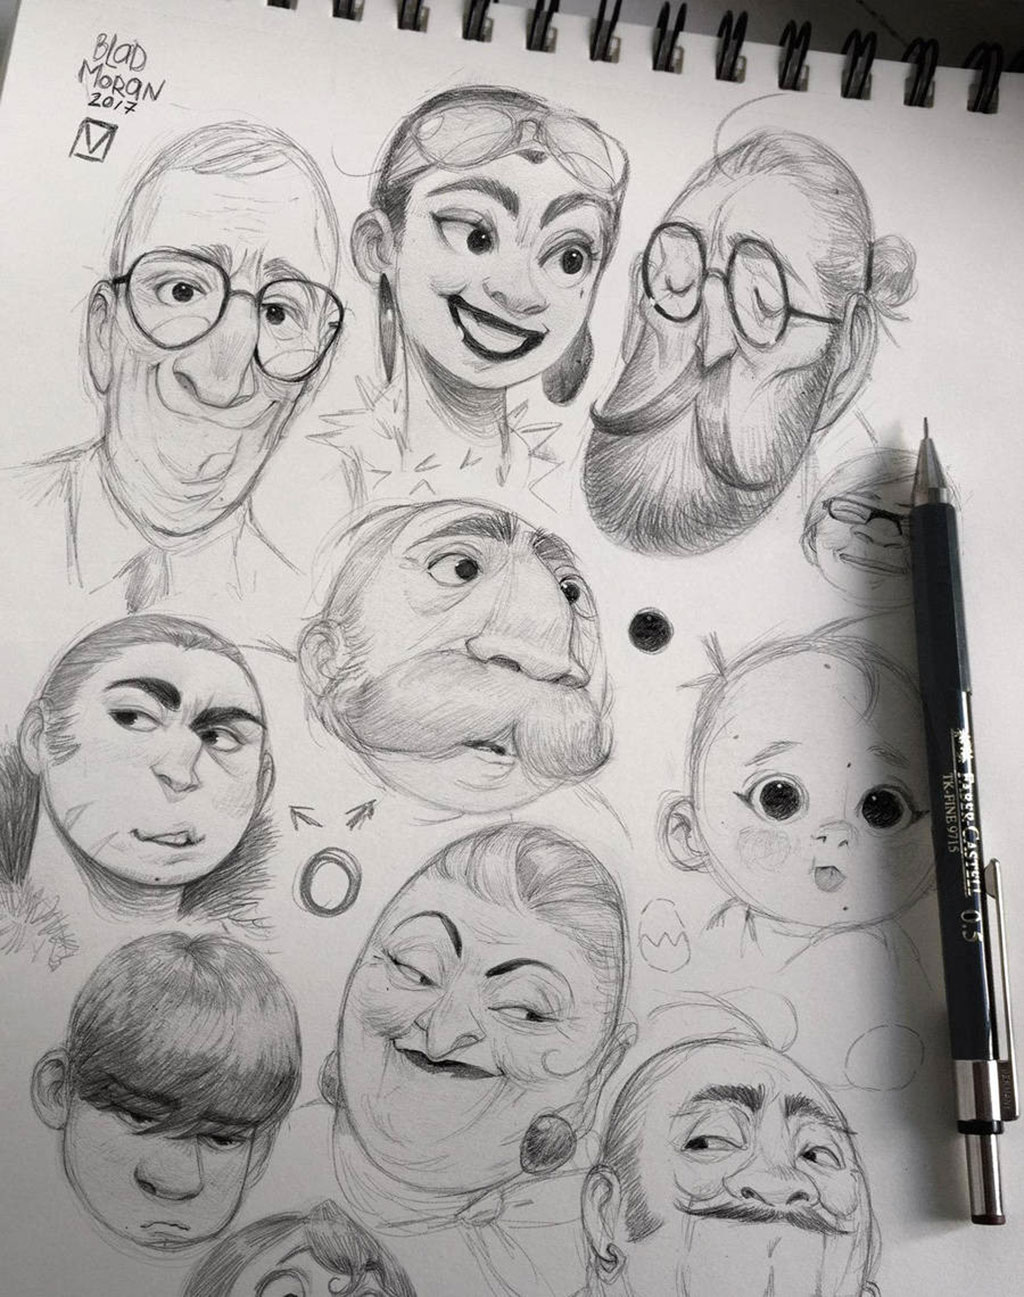 Drawing of multiple faces showing various expressions